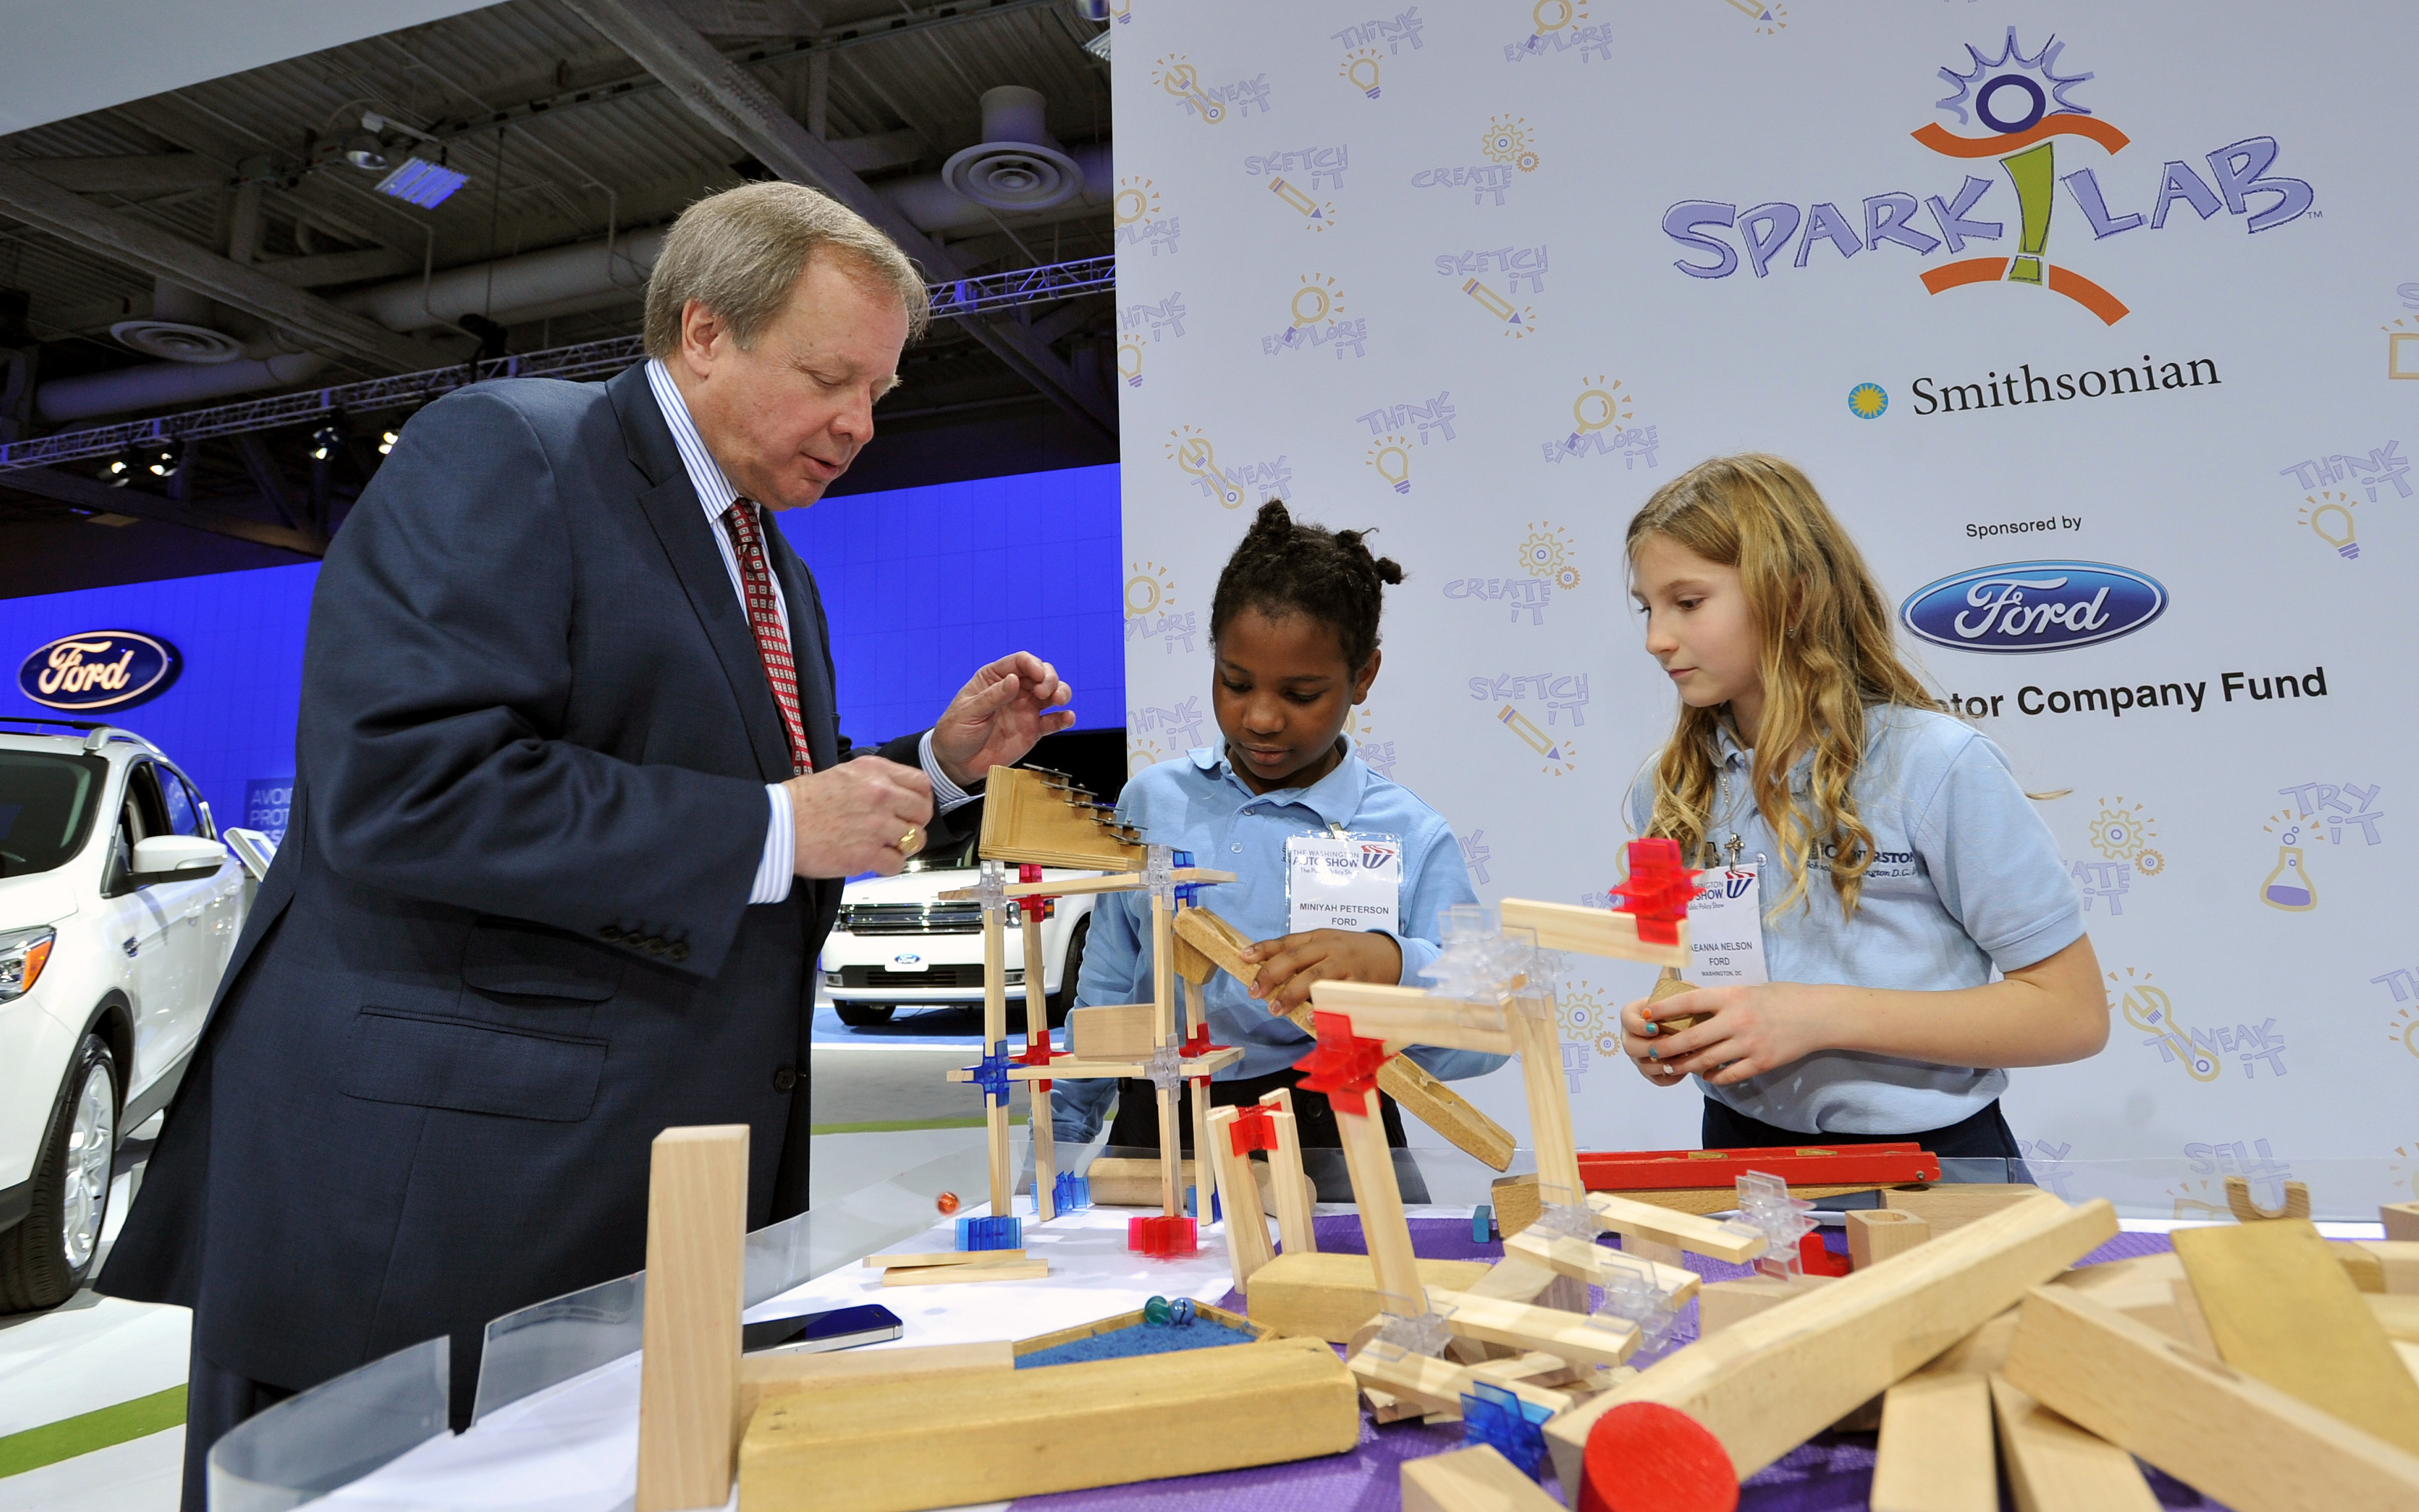 Edsel Ford II joins fourth grade students Miniyah Peterson (center) and Raeanna Nelson (right) from the Cornerstone Schools of Washington, DC, in a Smithsonian Spark!Lab activity creating a sound pathway for marbles.